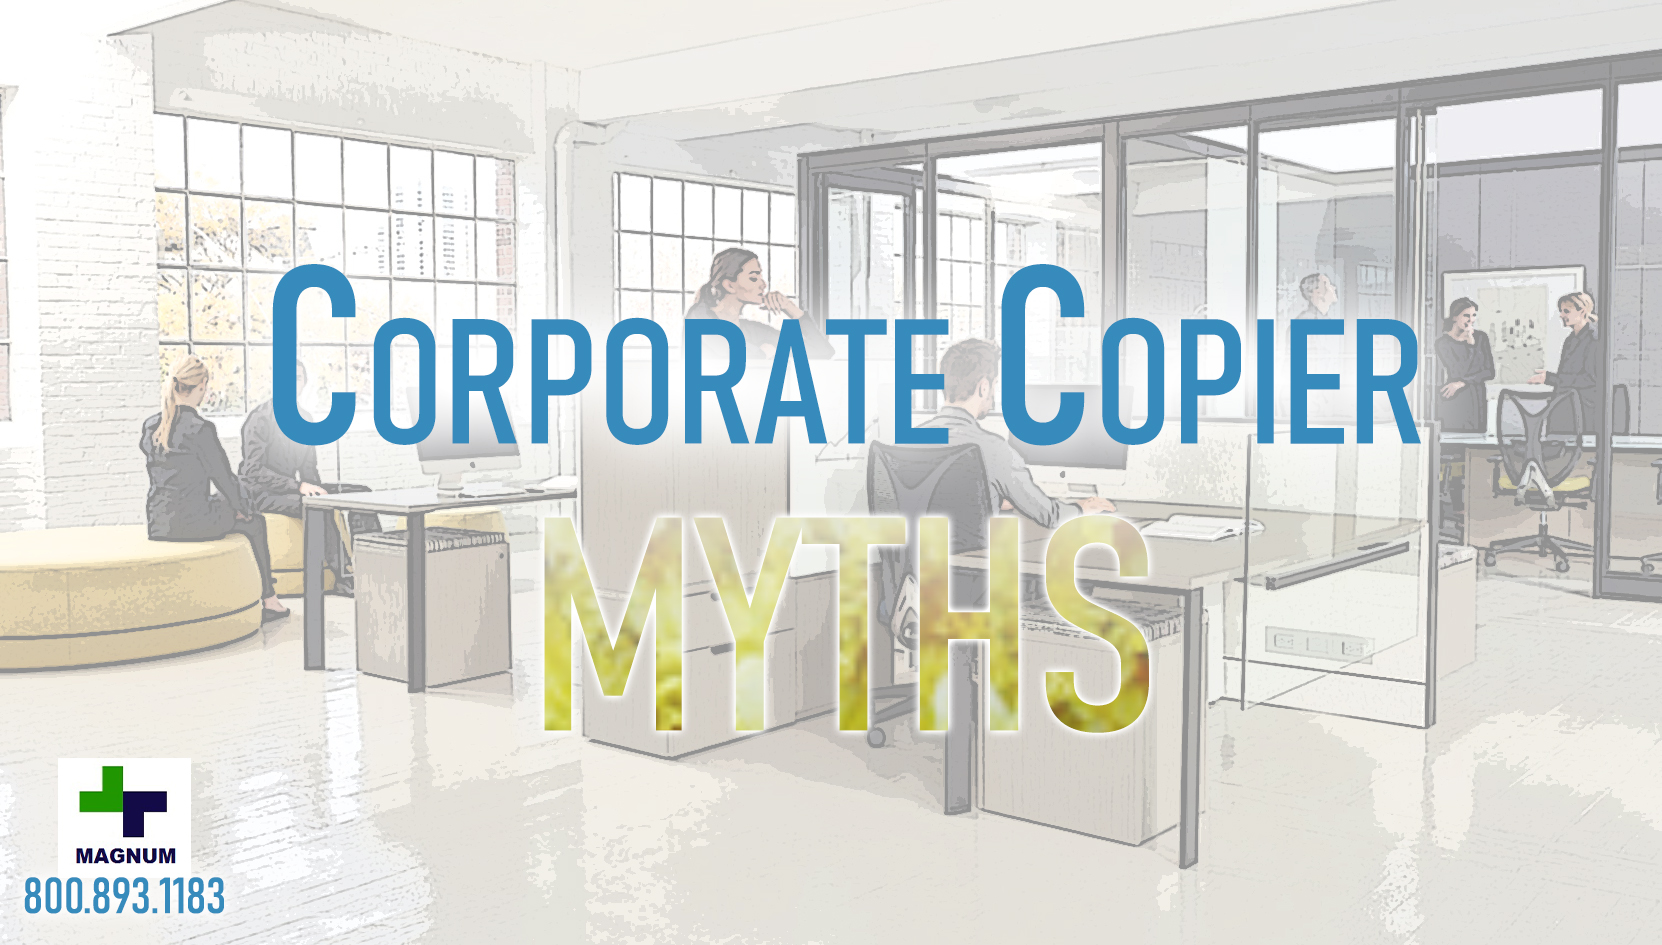 Corporate Copier Leasing Myths